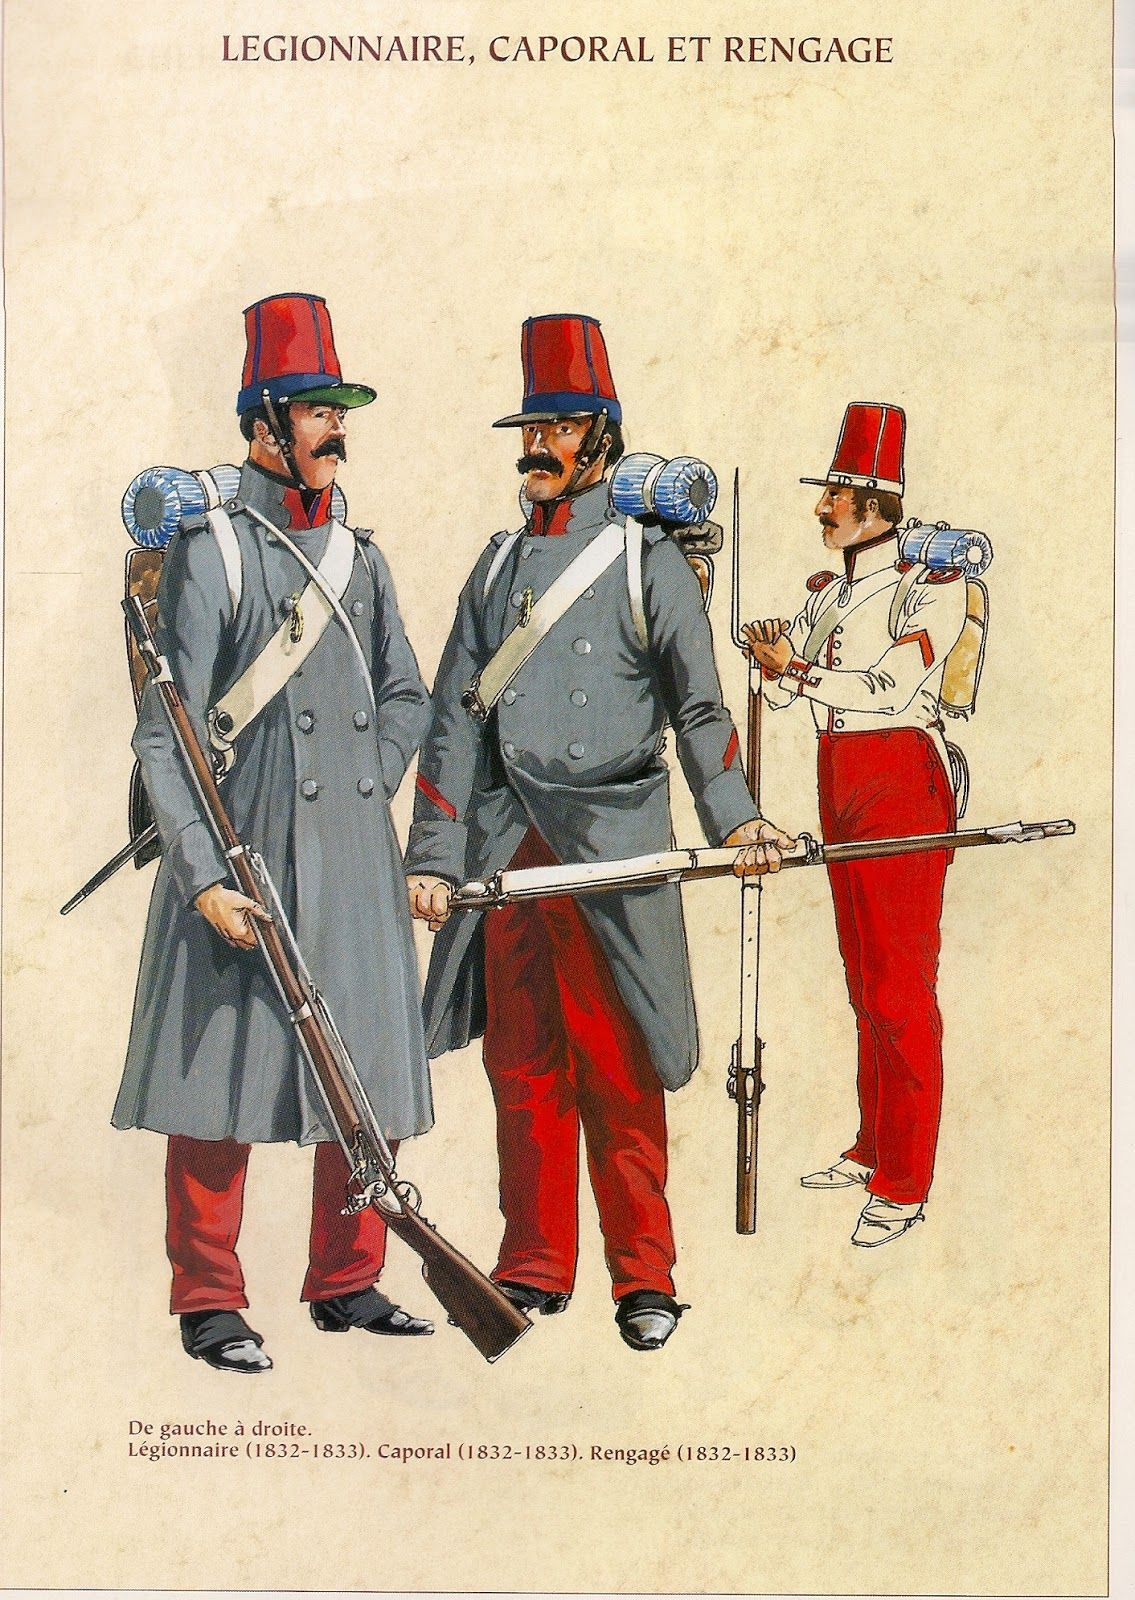 French Foreign Legion Legionaire Corporal Rengage 1832 33